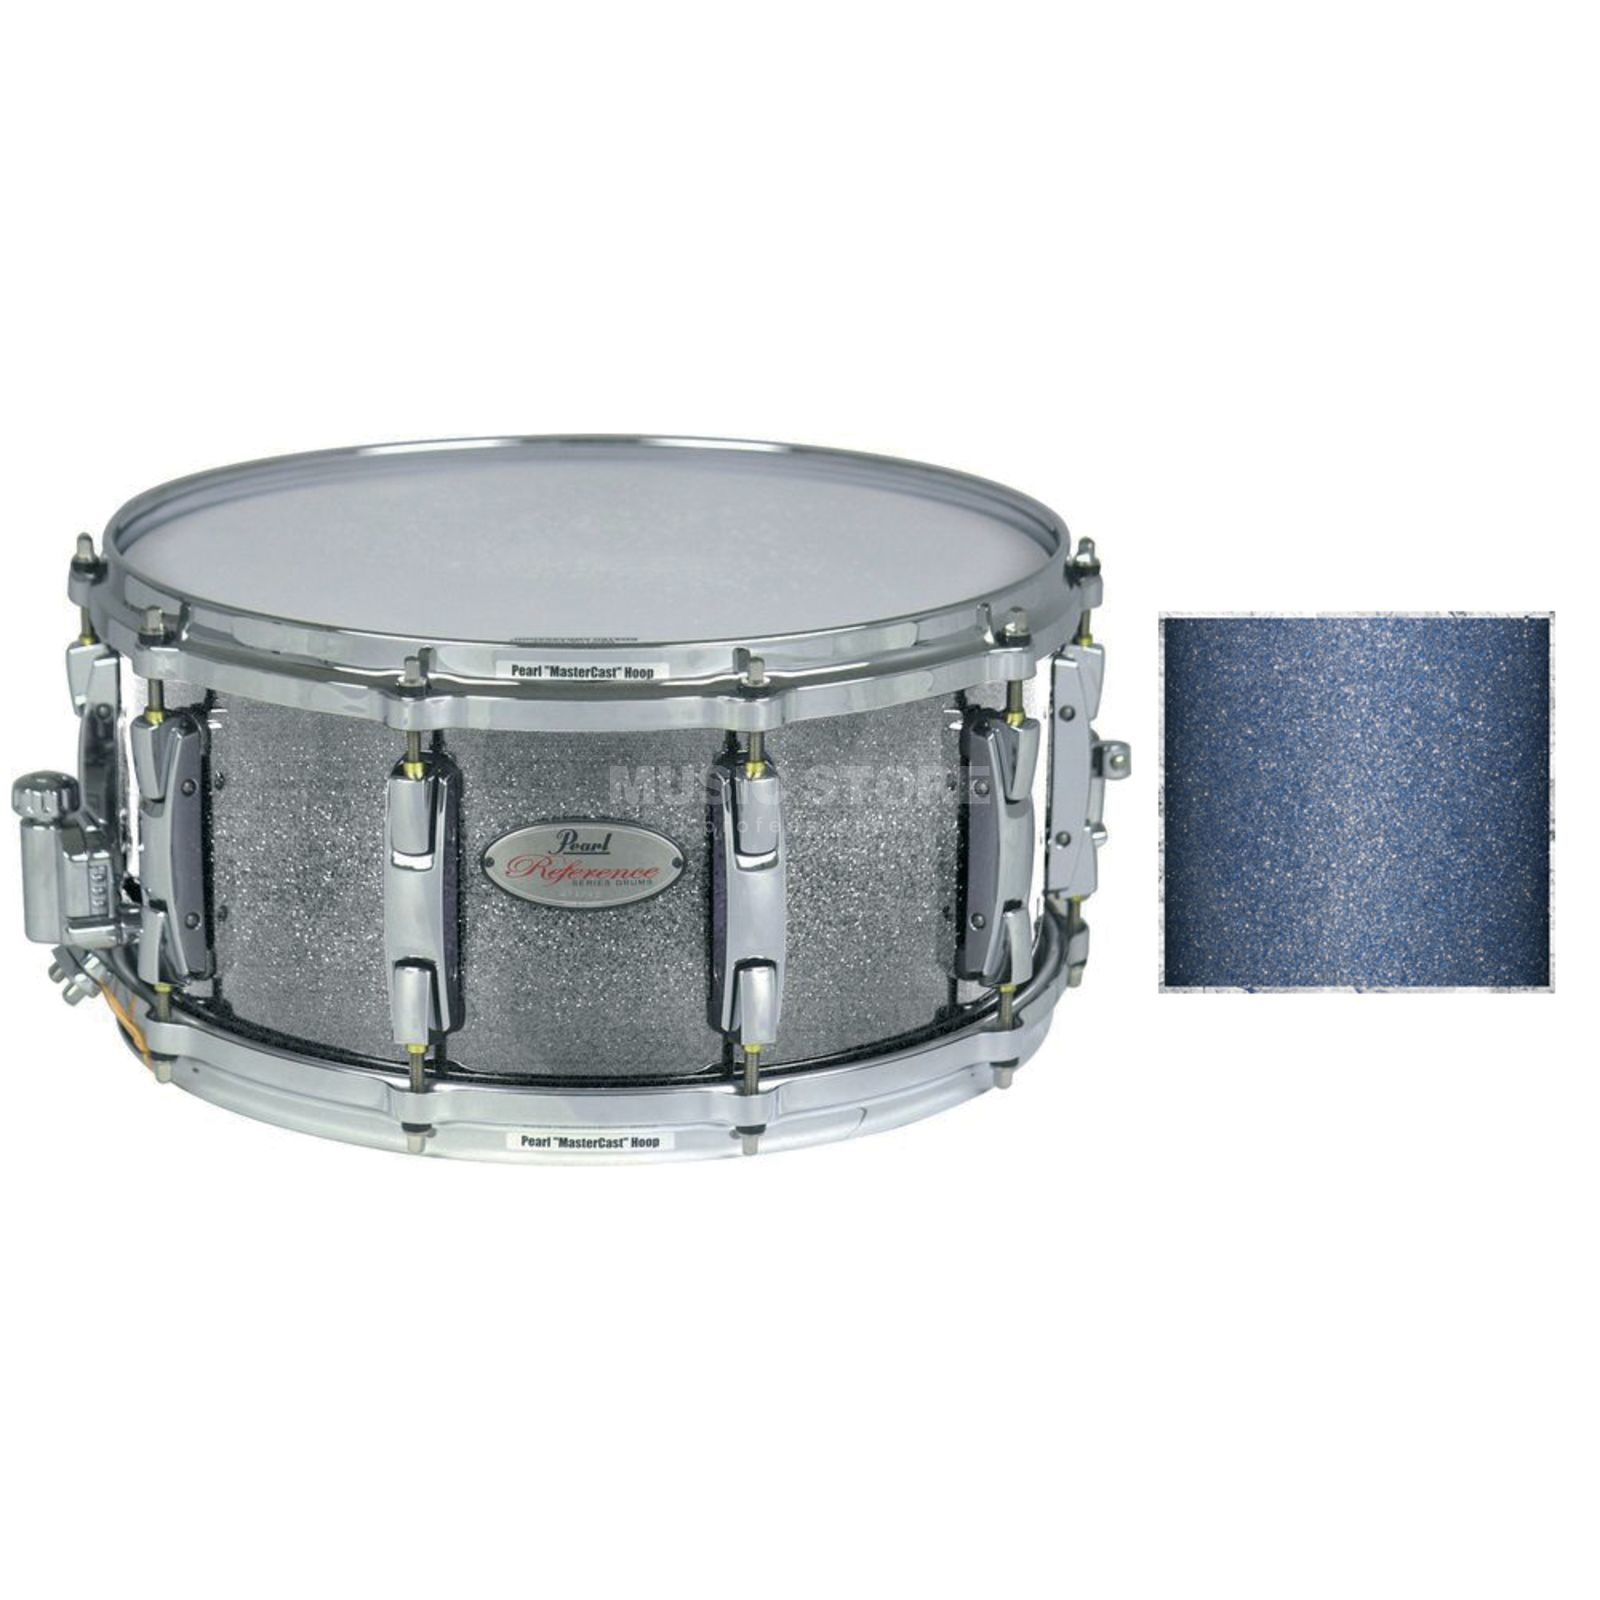 "Pearl RF1465S/C Reference Snare 14""x6,5"", Crystal Rain #195 Imagen del producto"